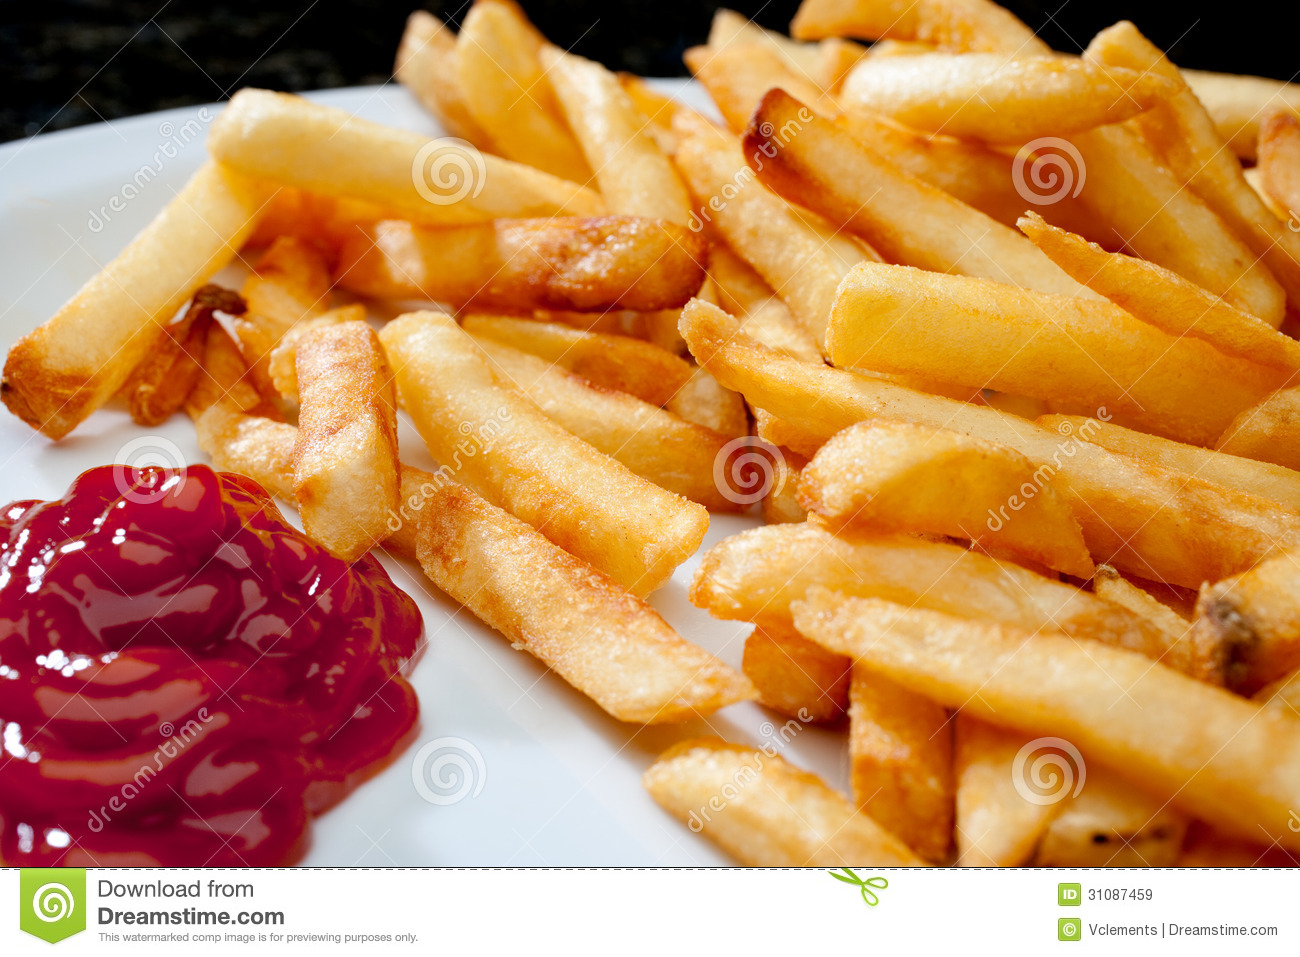 french fries with ketchup - photo #22